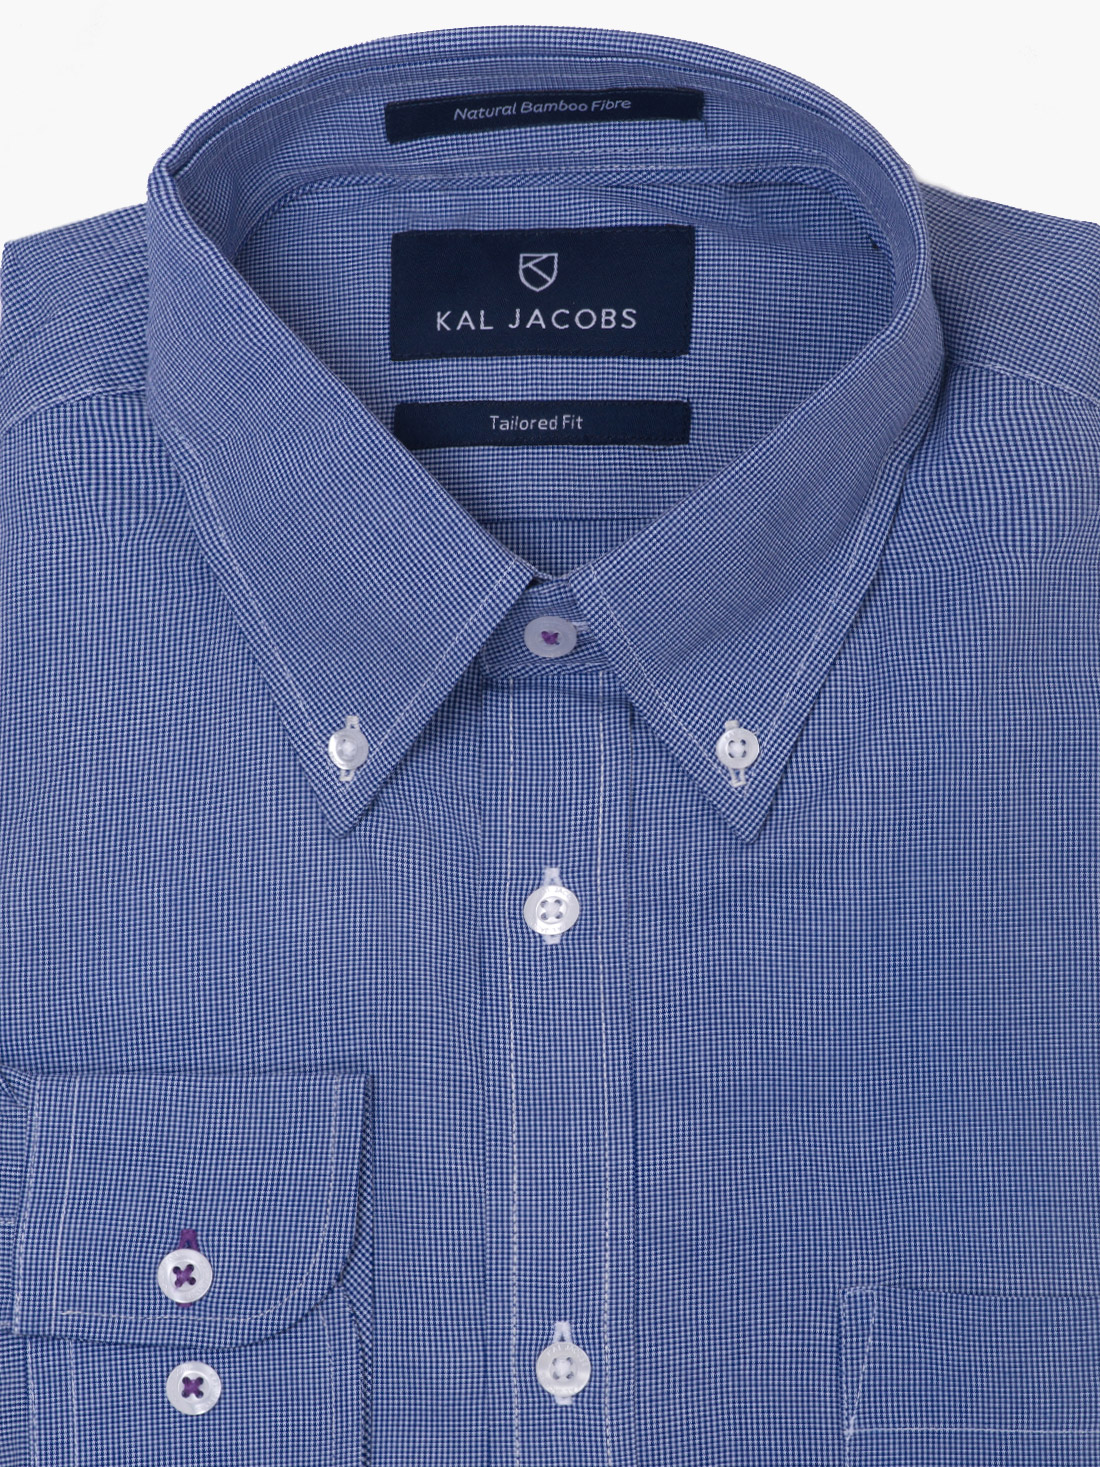 Tailored fit blue white pin check bamboo shirt kal jacobs for Bamboo button down shirts